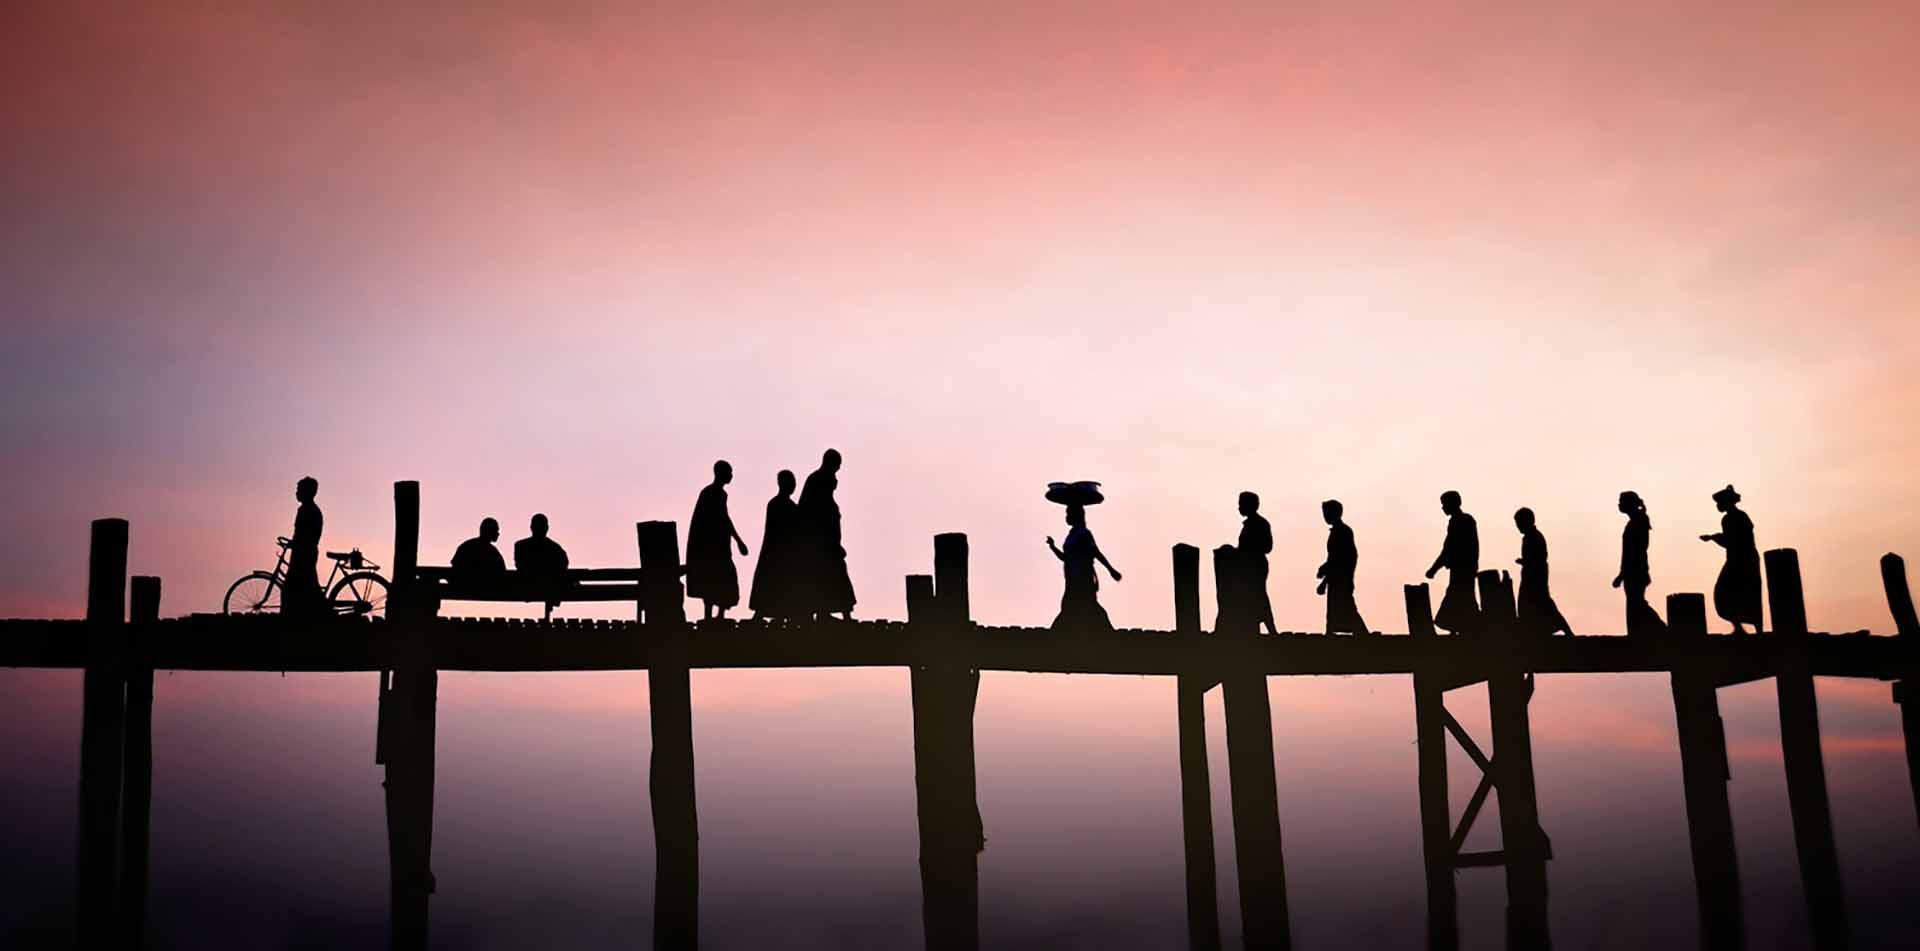 Asia Myanmar U Bein Bridge beautiful colorful sunset dark silhouettes of pedestrians crossing - luxury vacation destinations